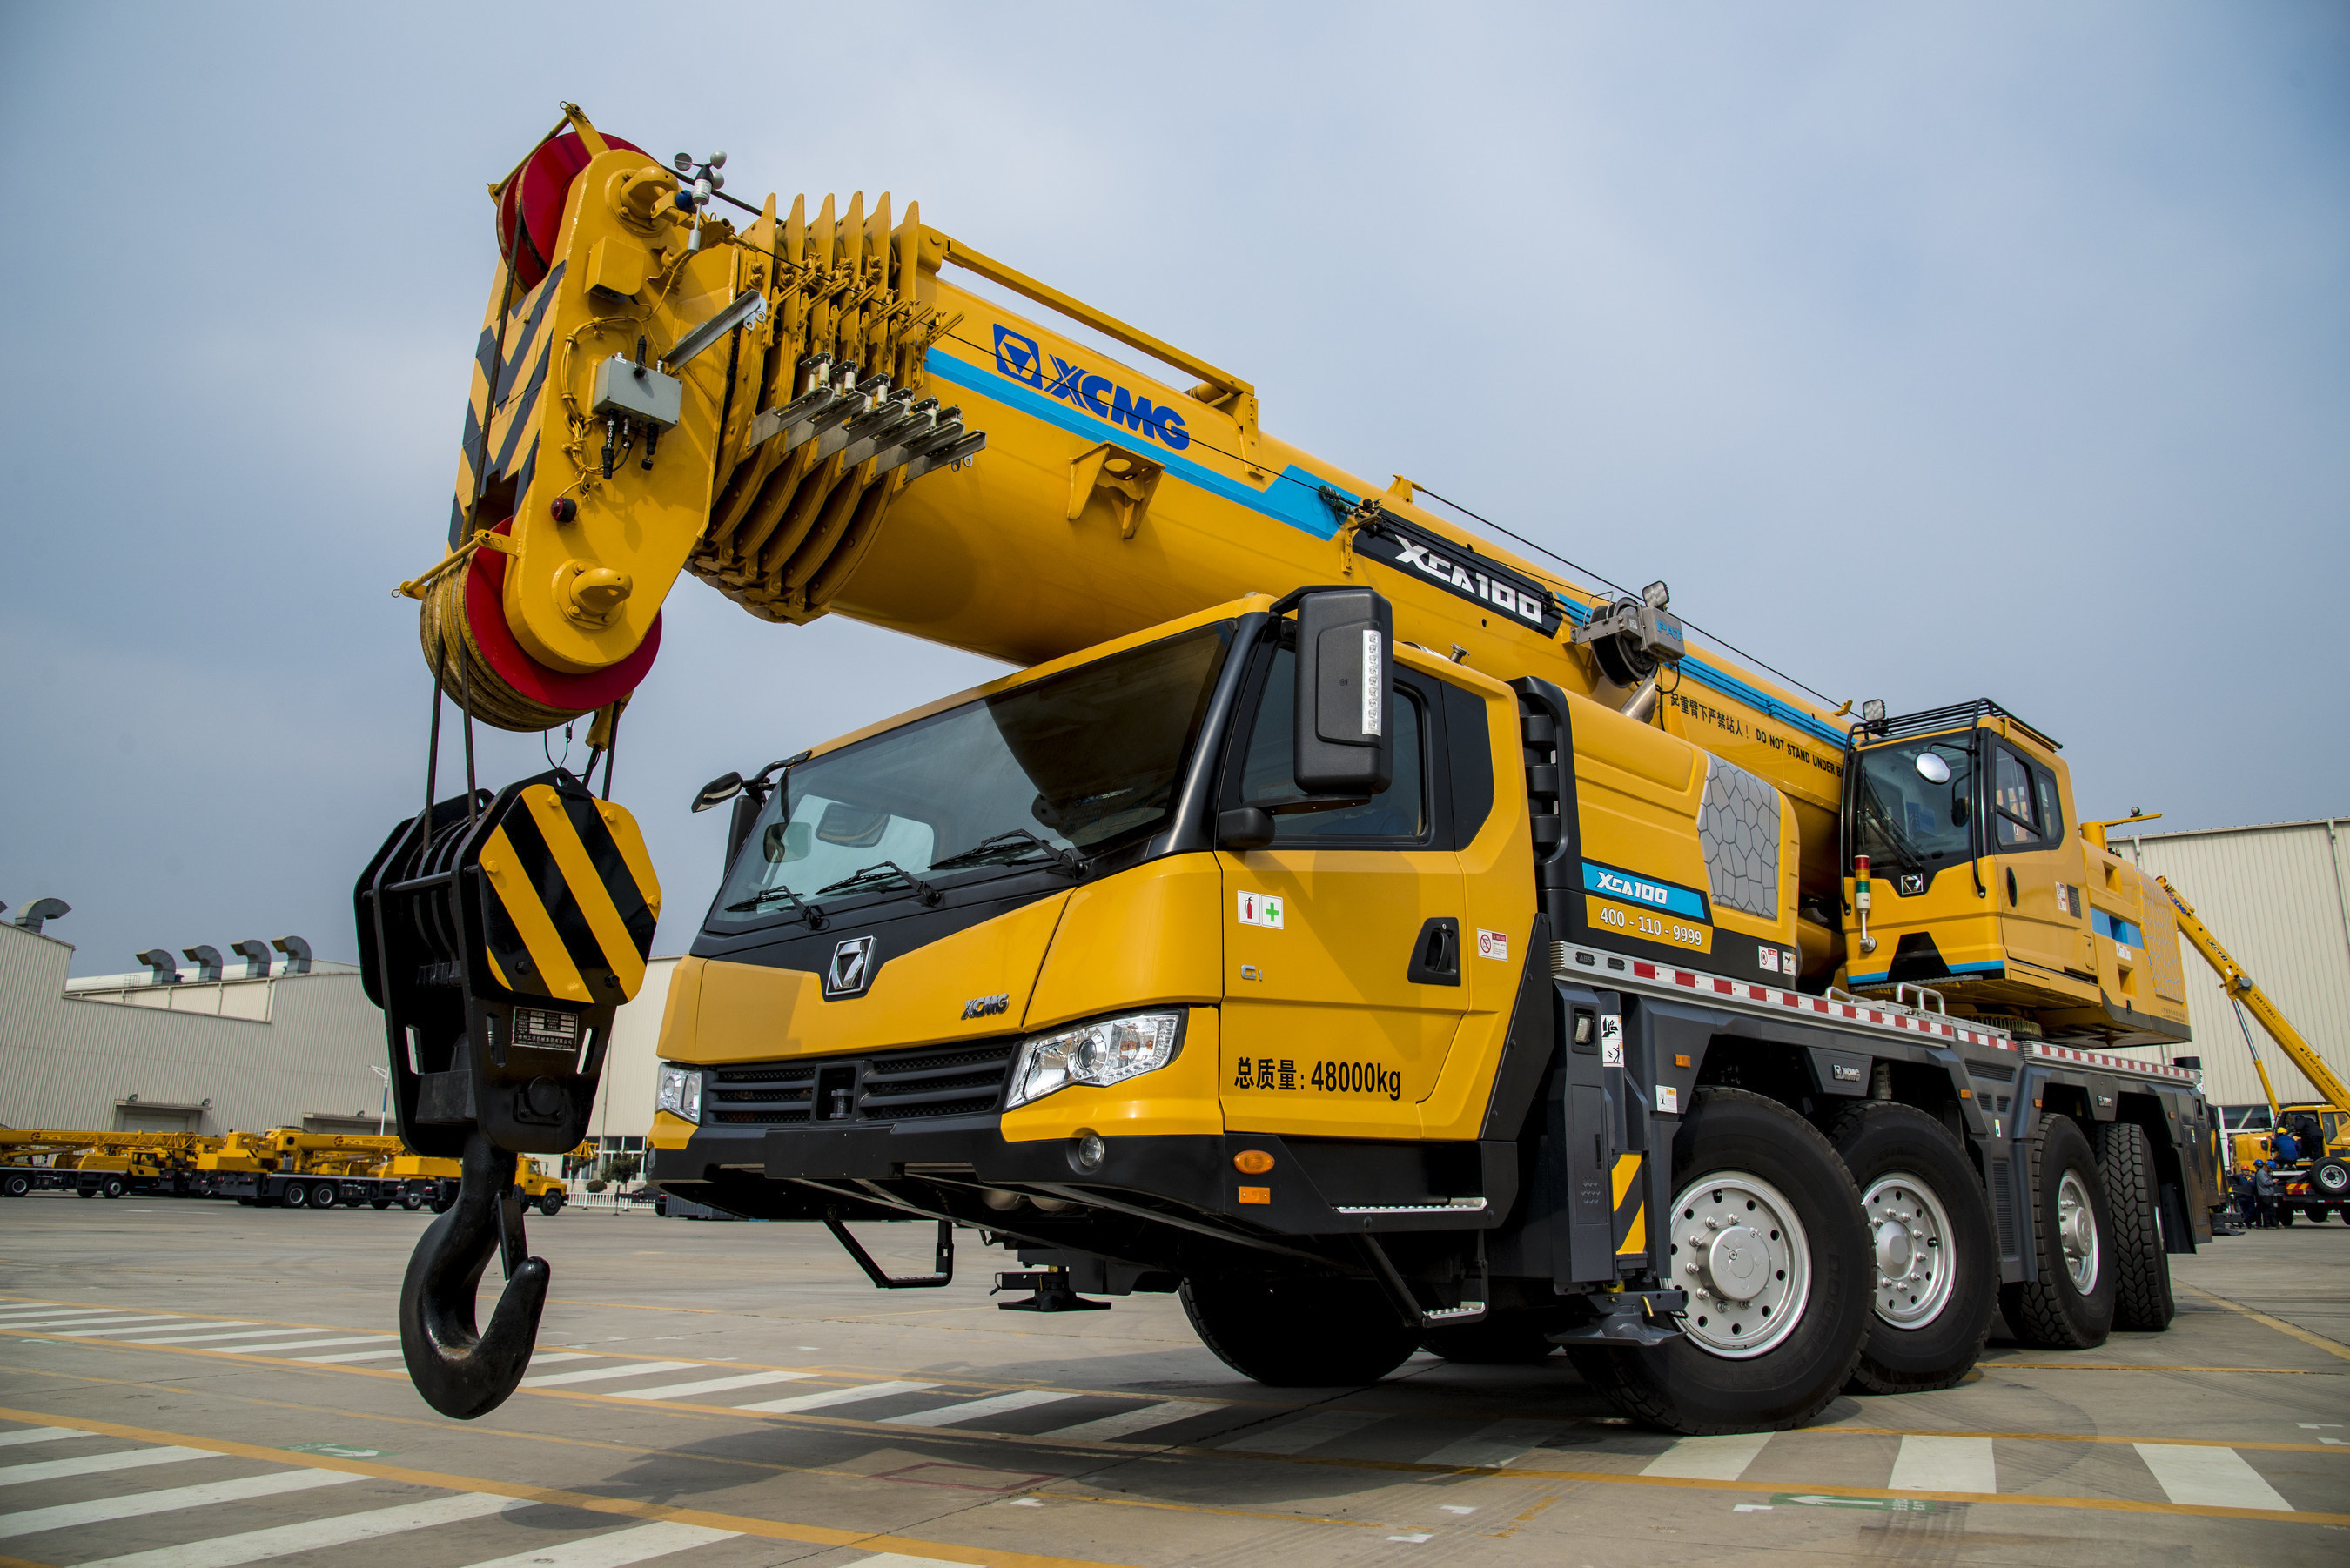 One centerpiece of the XCMG G-series launch is the XCA100E, the all-terrain crane equipped with new energy-saving hydraulic system and intelligent boom design as well as a smart travelling control system.